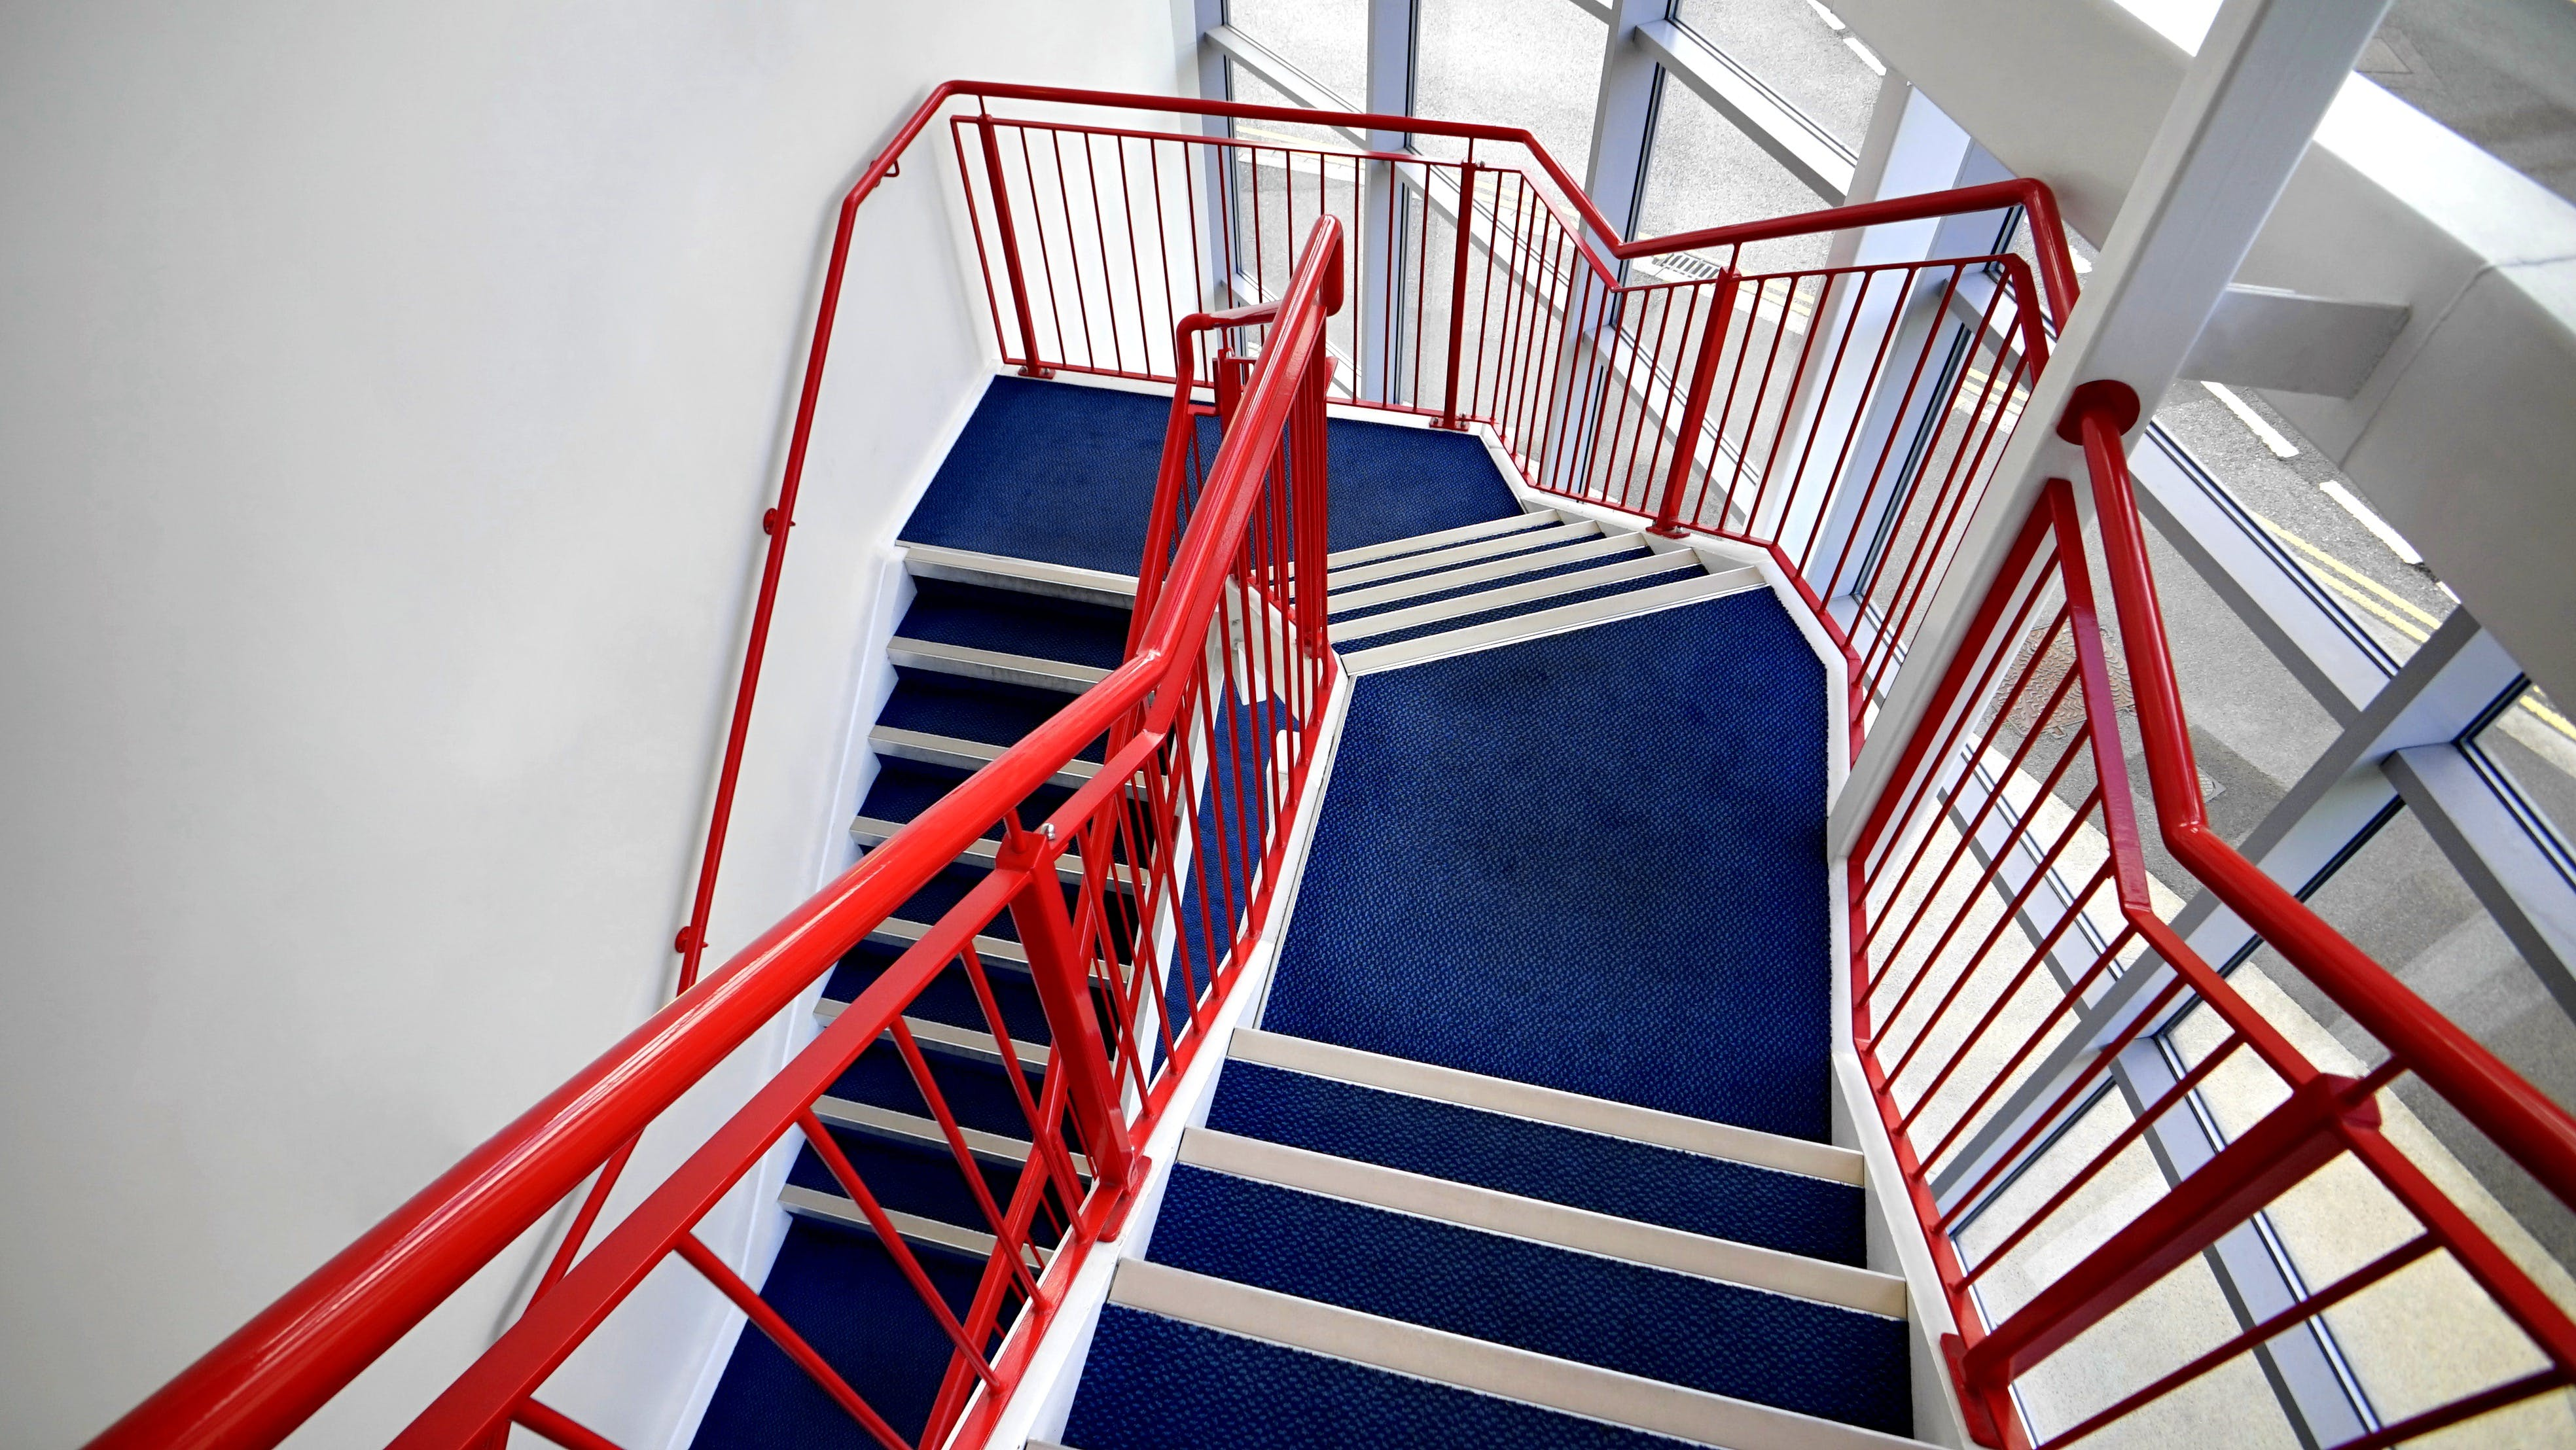 Blue Stairs and Red Handled on White Paint Wall